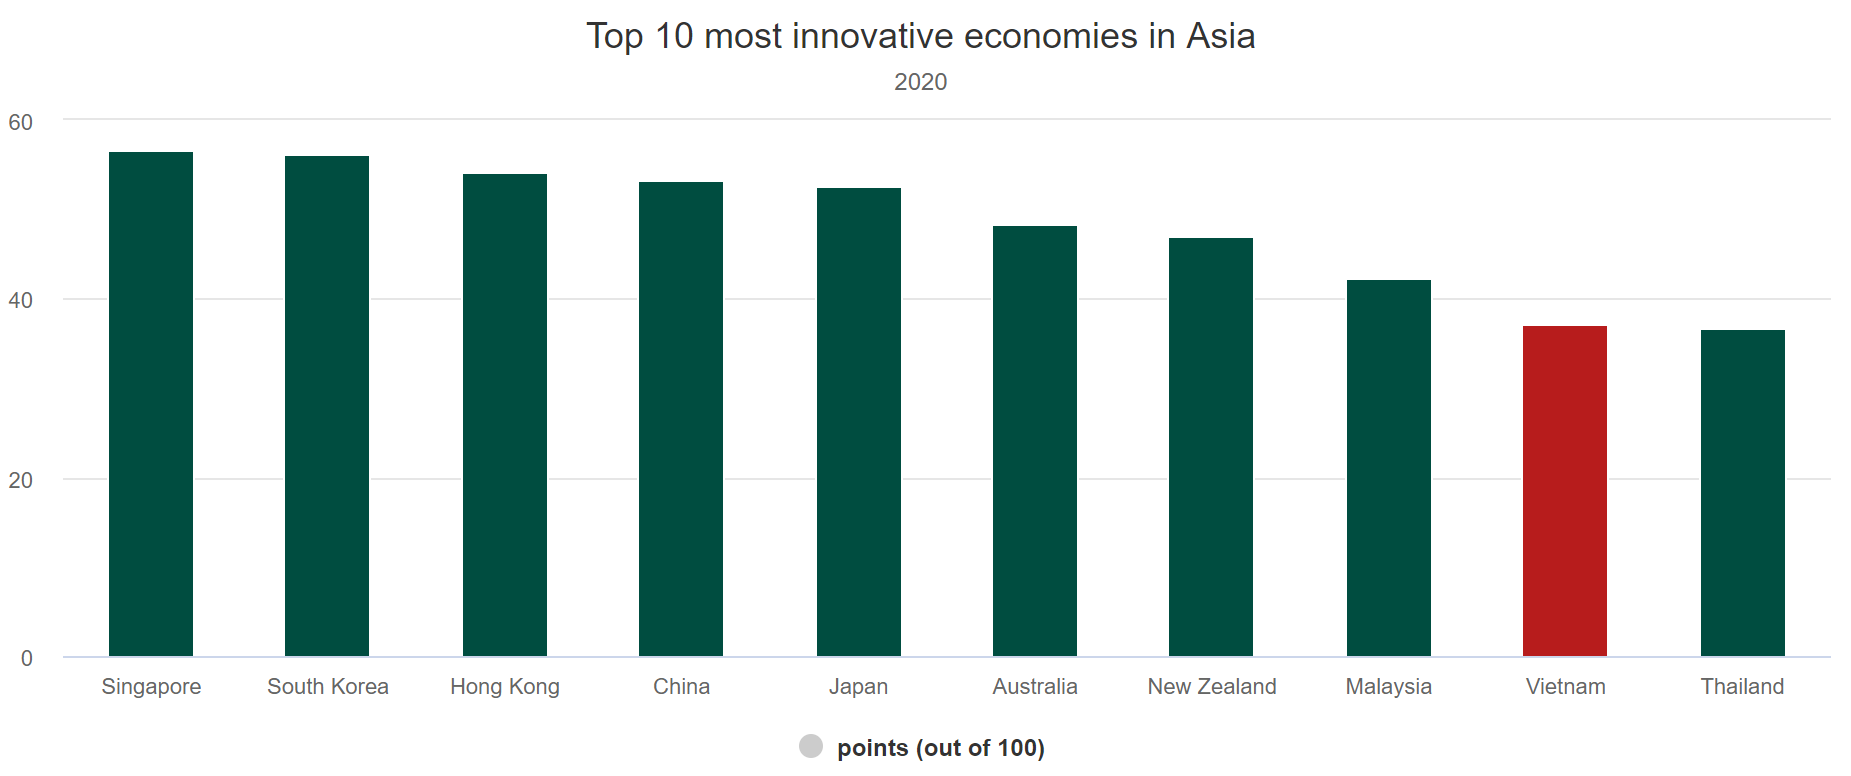 Vietnam ninth in Asia on innovation index